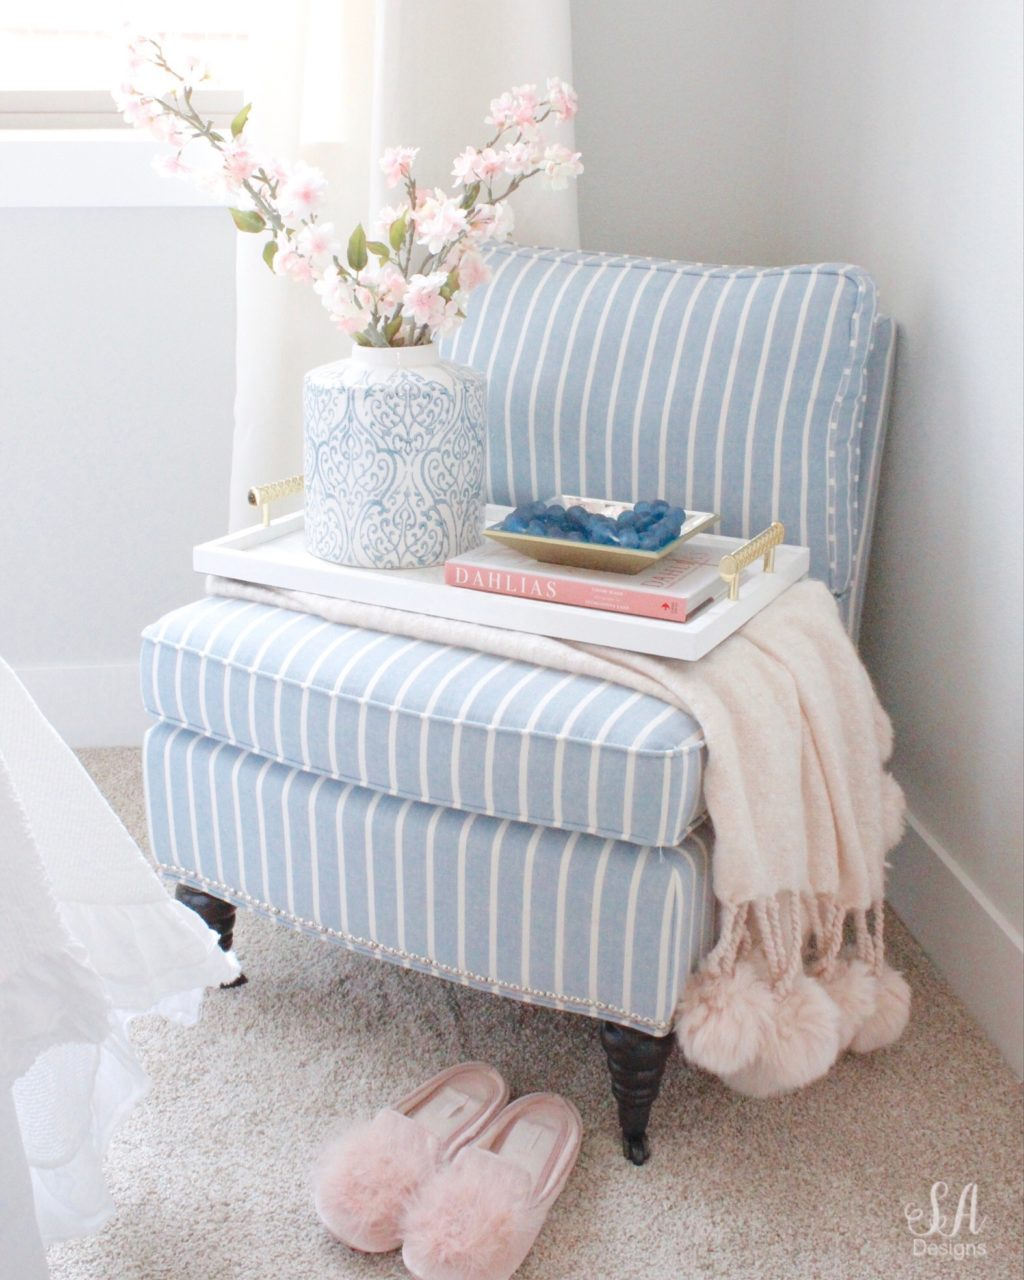 Blue And White Striped Chair Coastal Glam Guest Bedroom Blue White Striped Chair With Blush